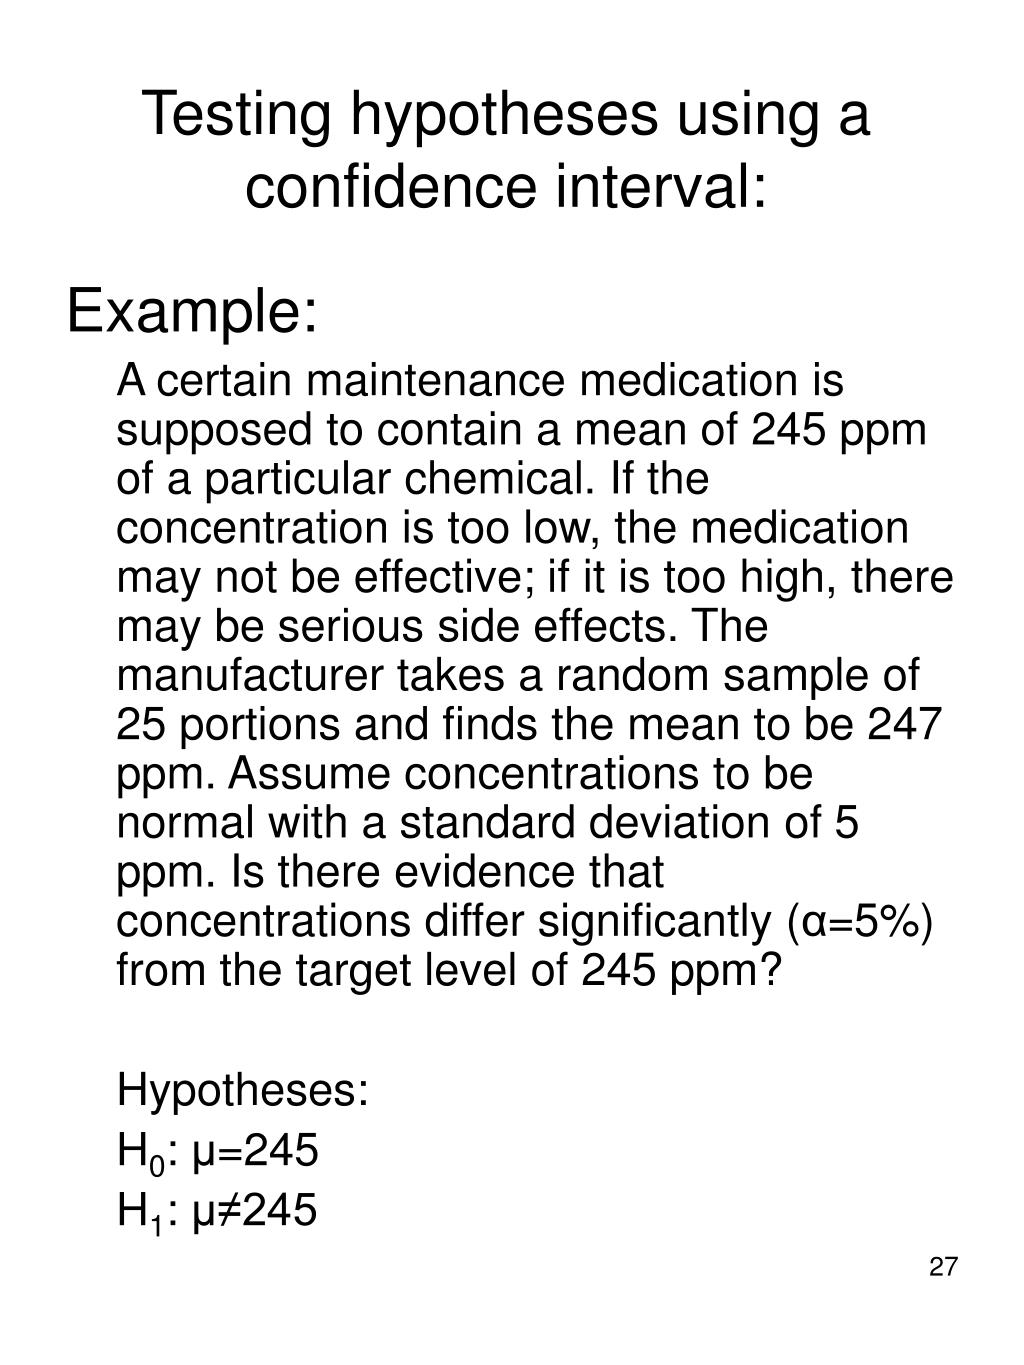 Testing hypotheses using a confidence interval: